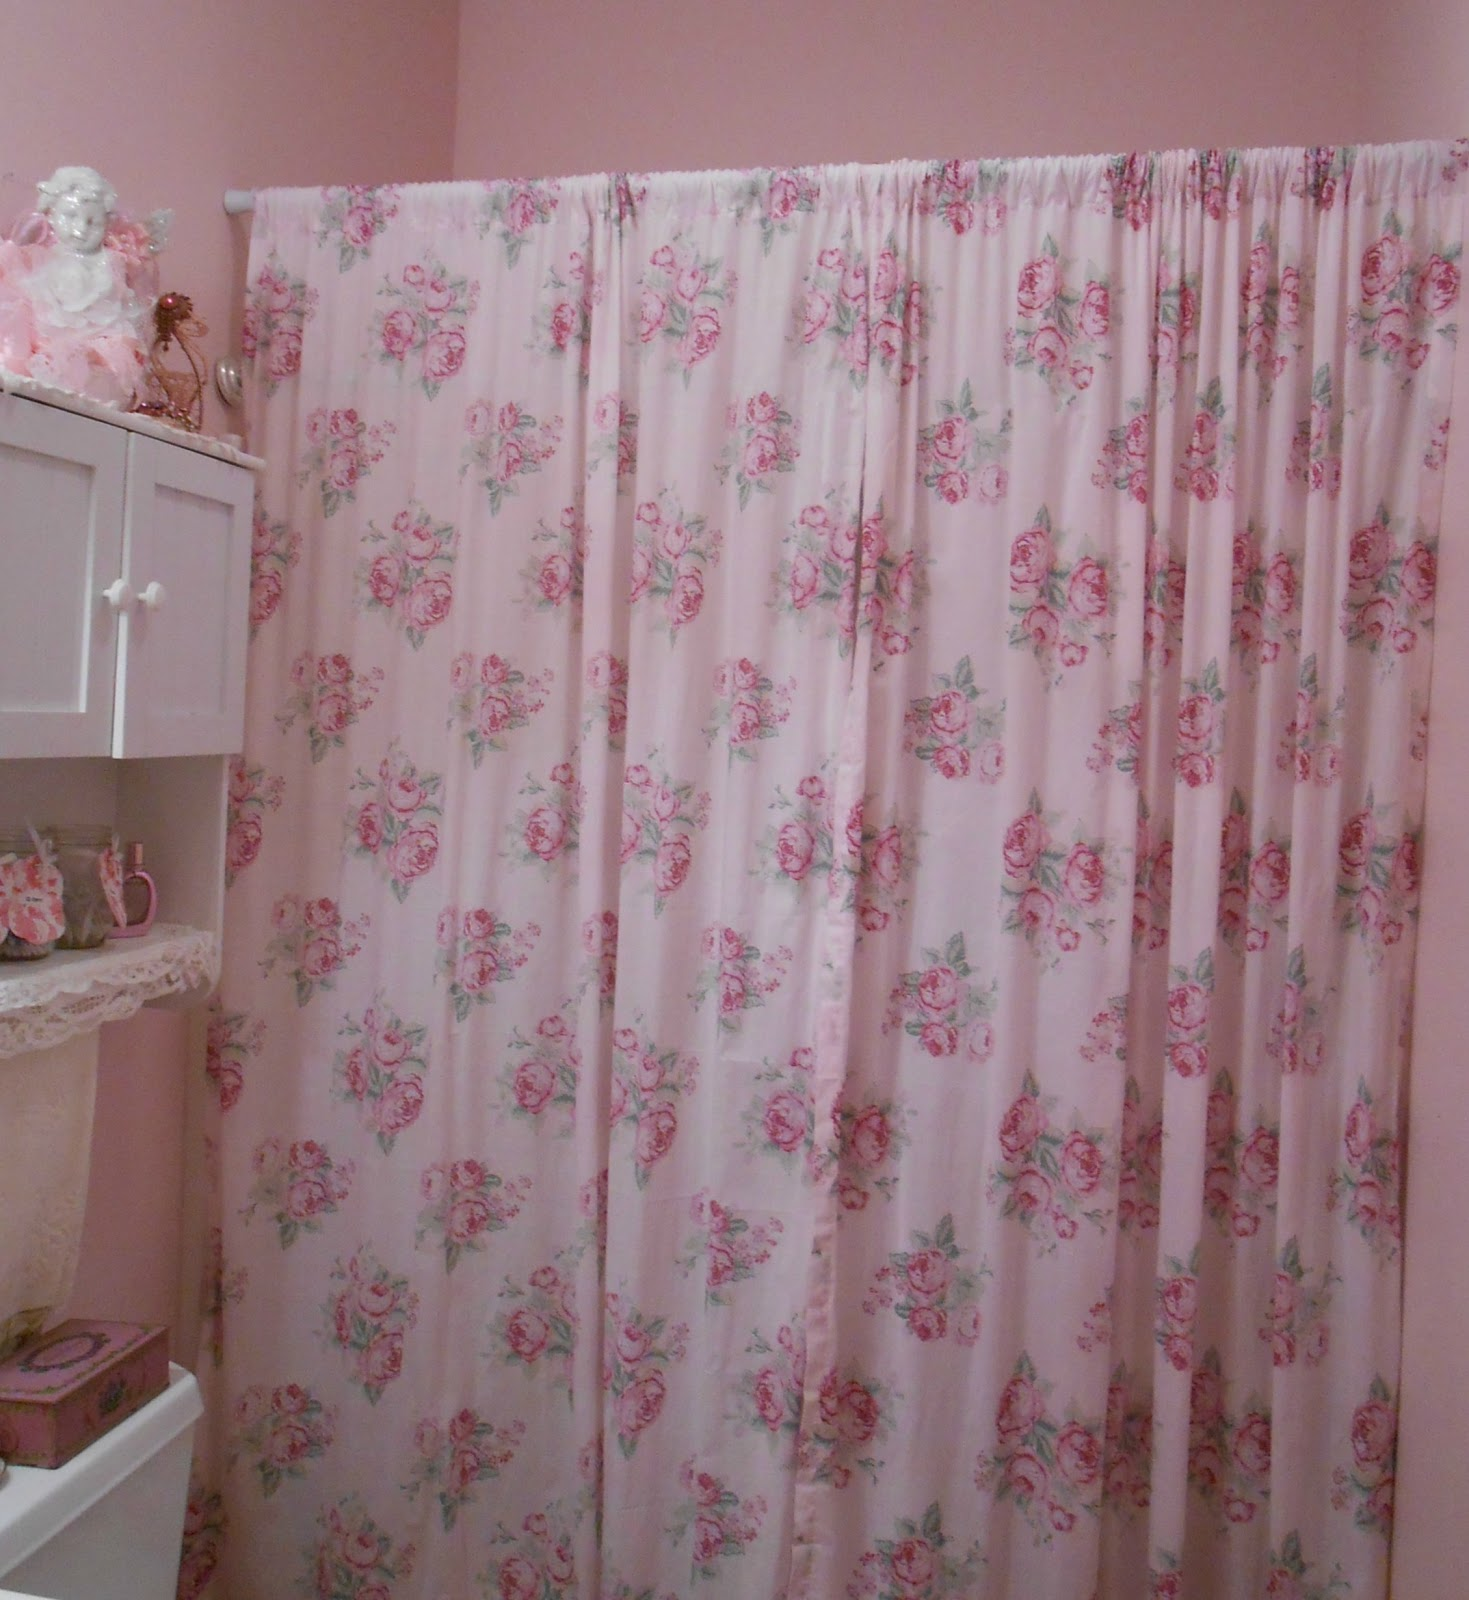 Shabby Chic Curtains: Olivia's Romantic Home: Shabby Chic Bathroom